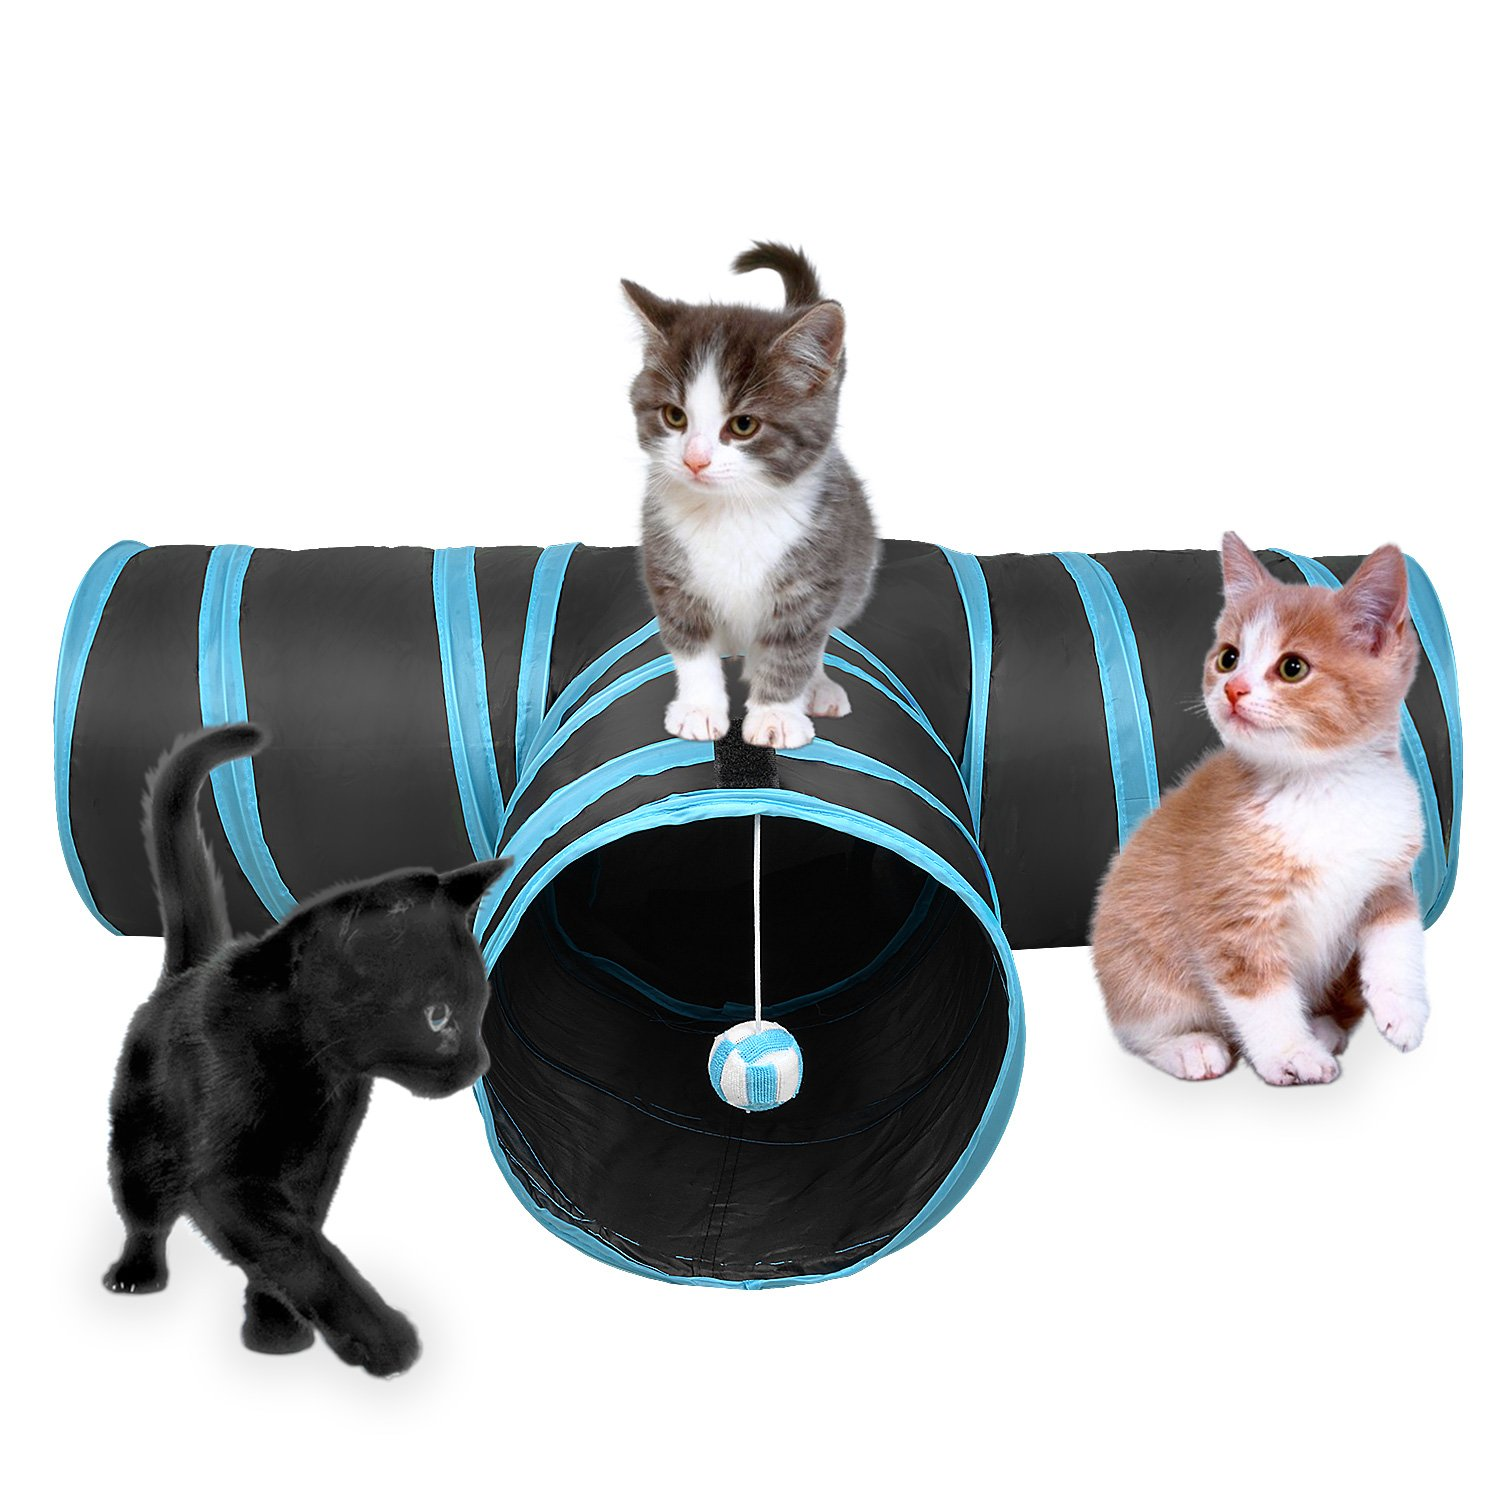 3 Way Cat Tunnel Creaker Collapsible Pet Toy Tunnel with Ball for Cat Puppy K...